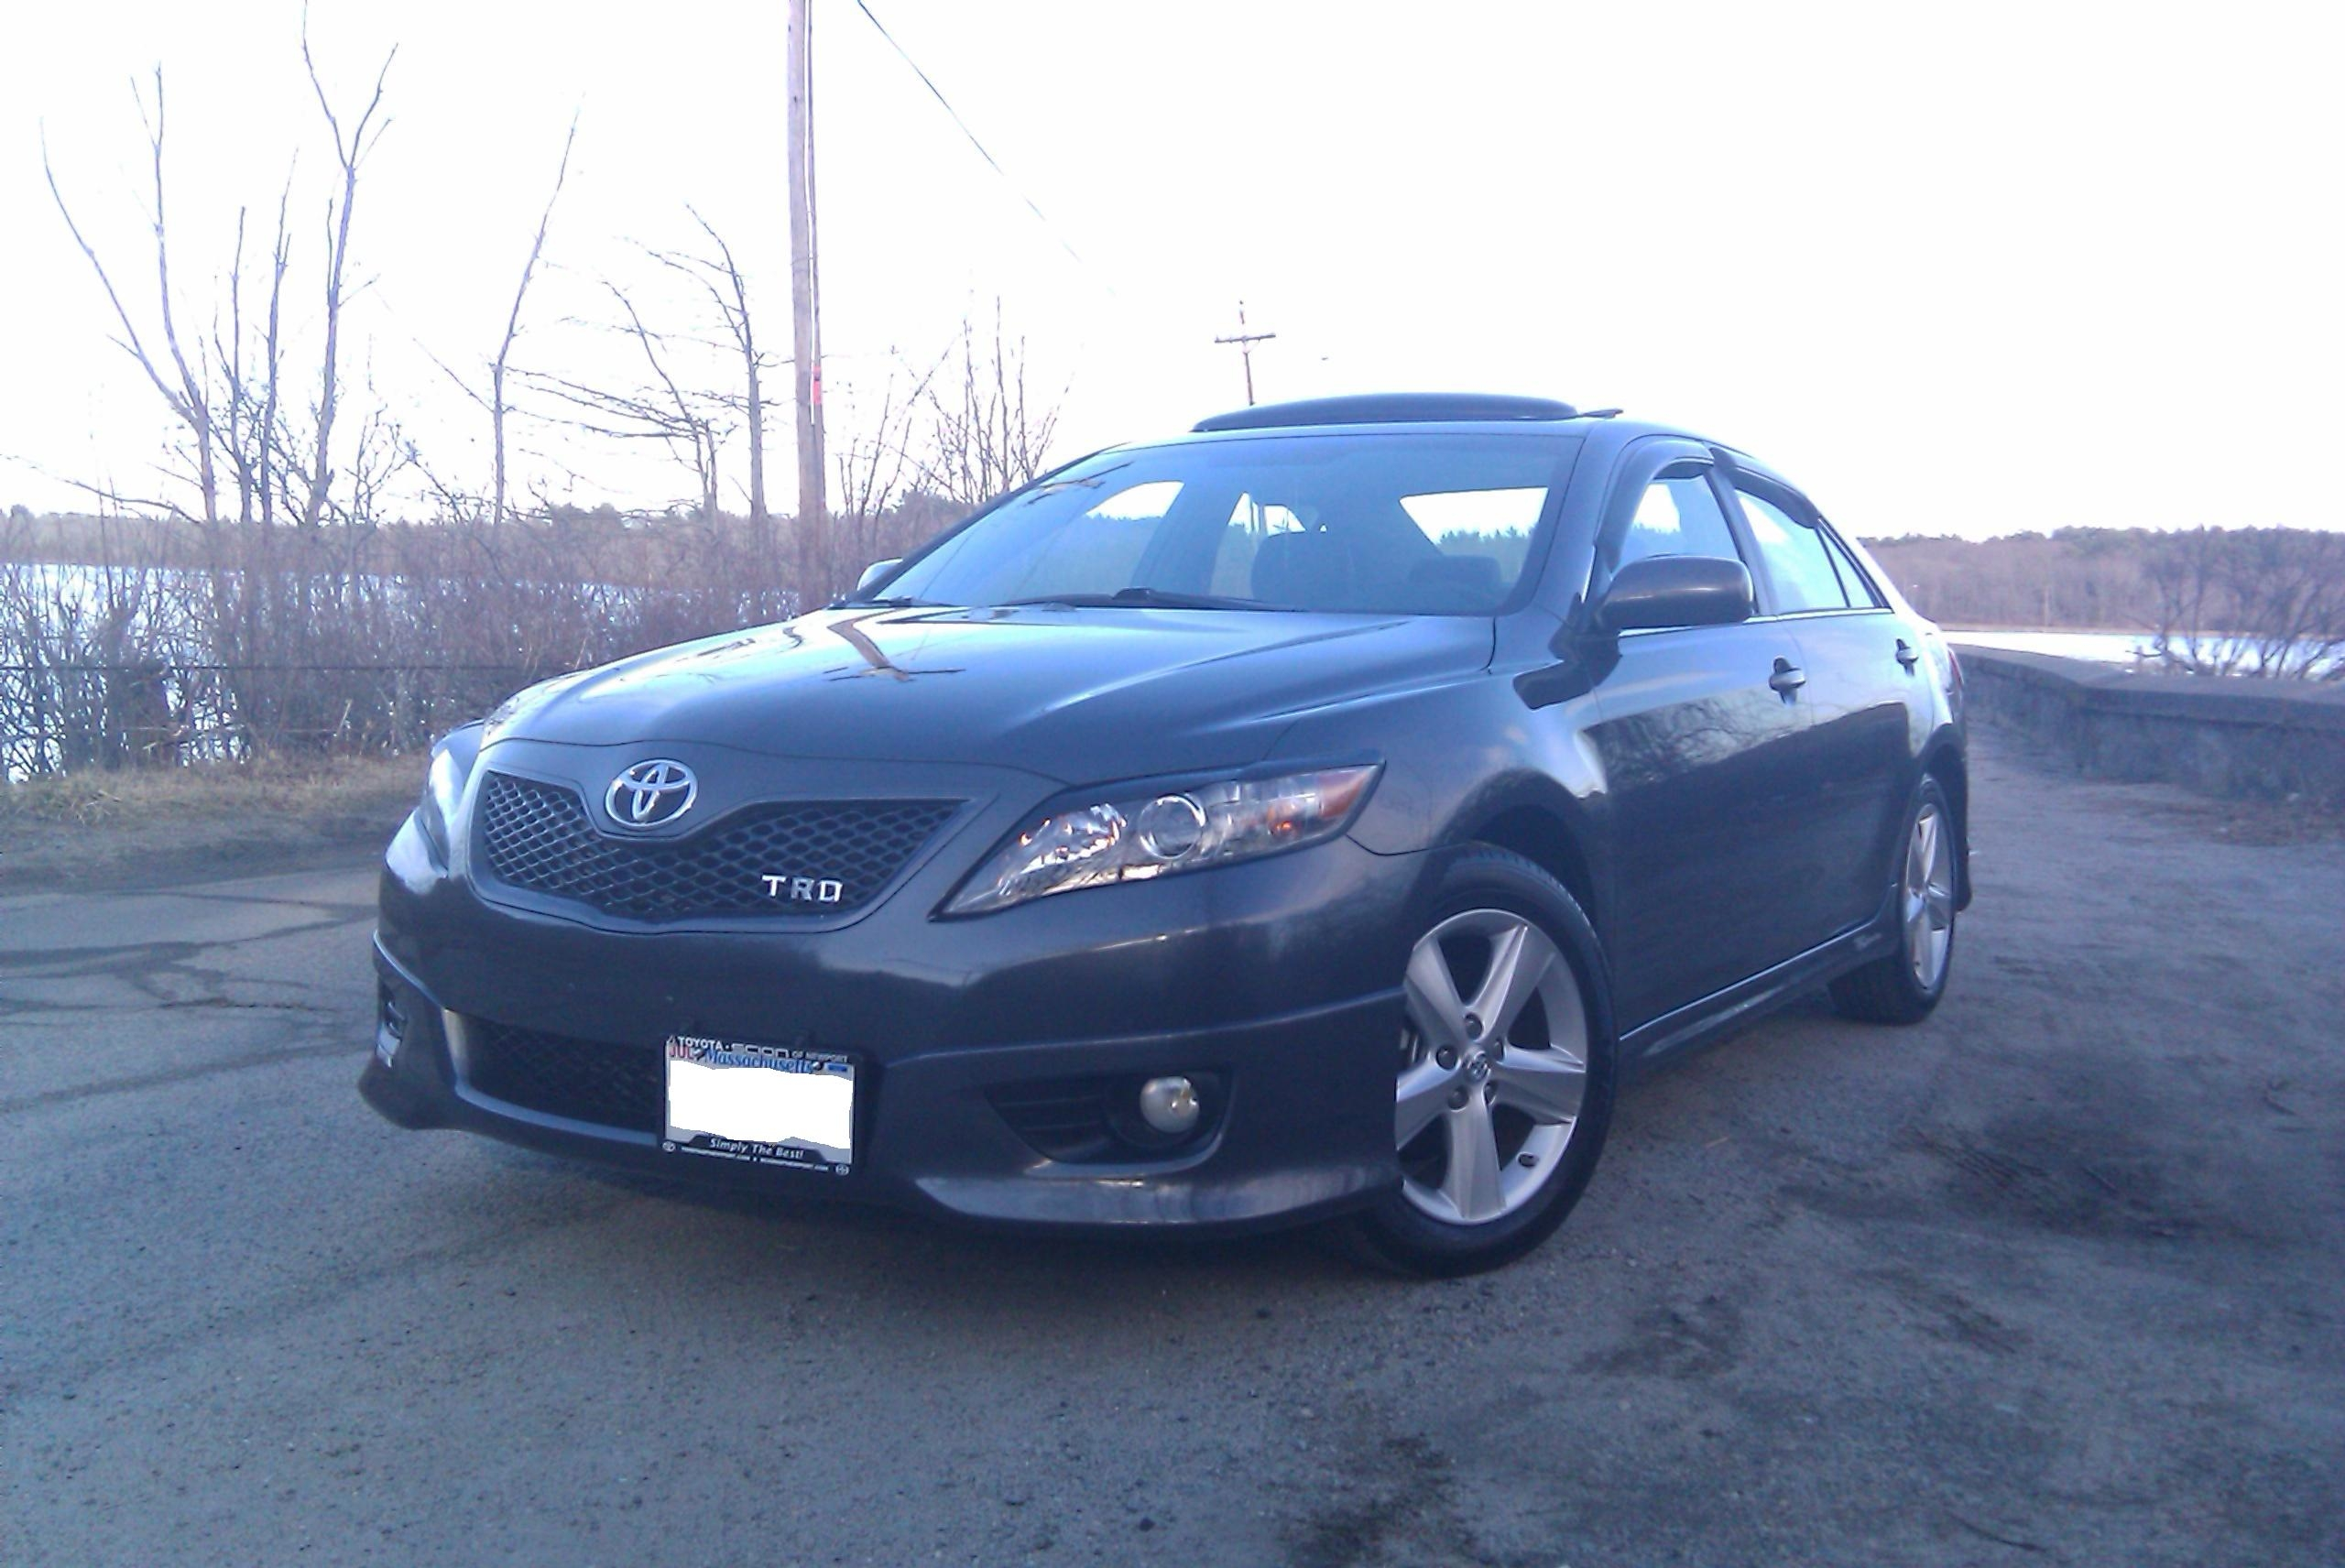 mrtrd103 2010 Toyota Camry Specs s Modification Info at CarDomain